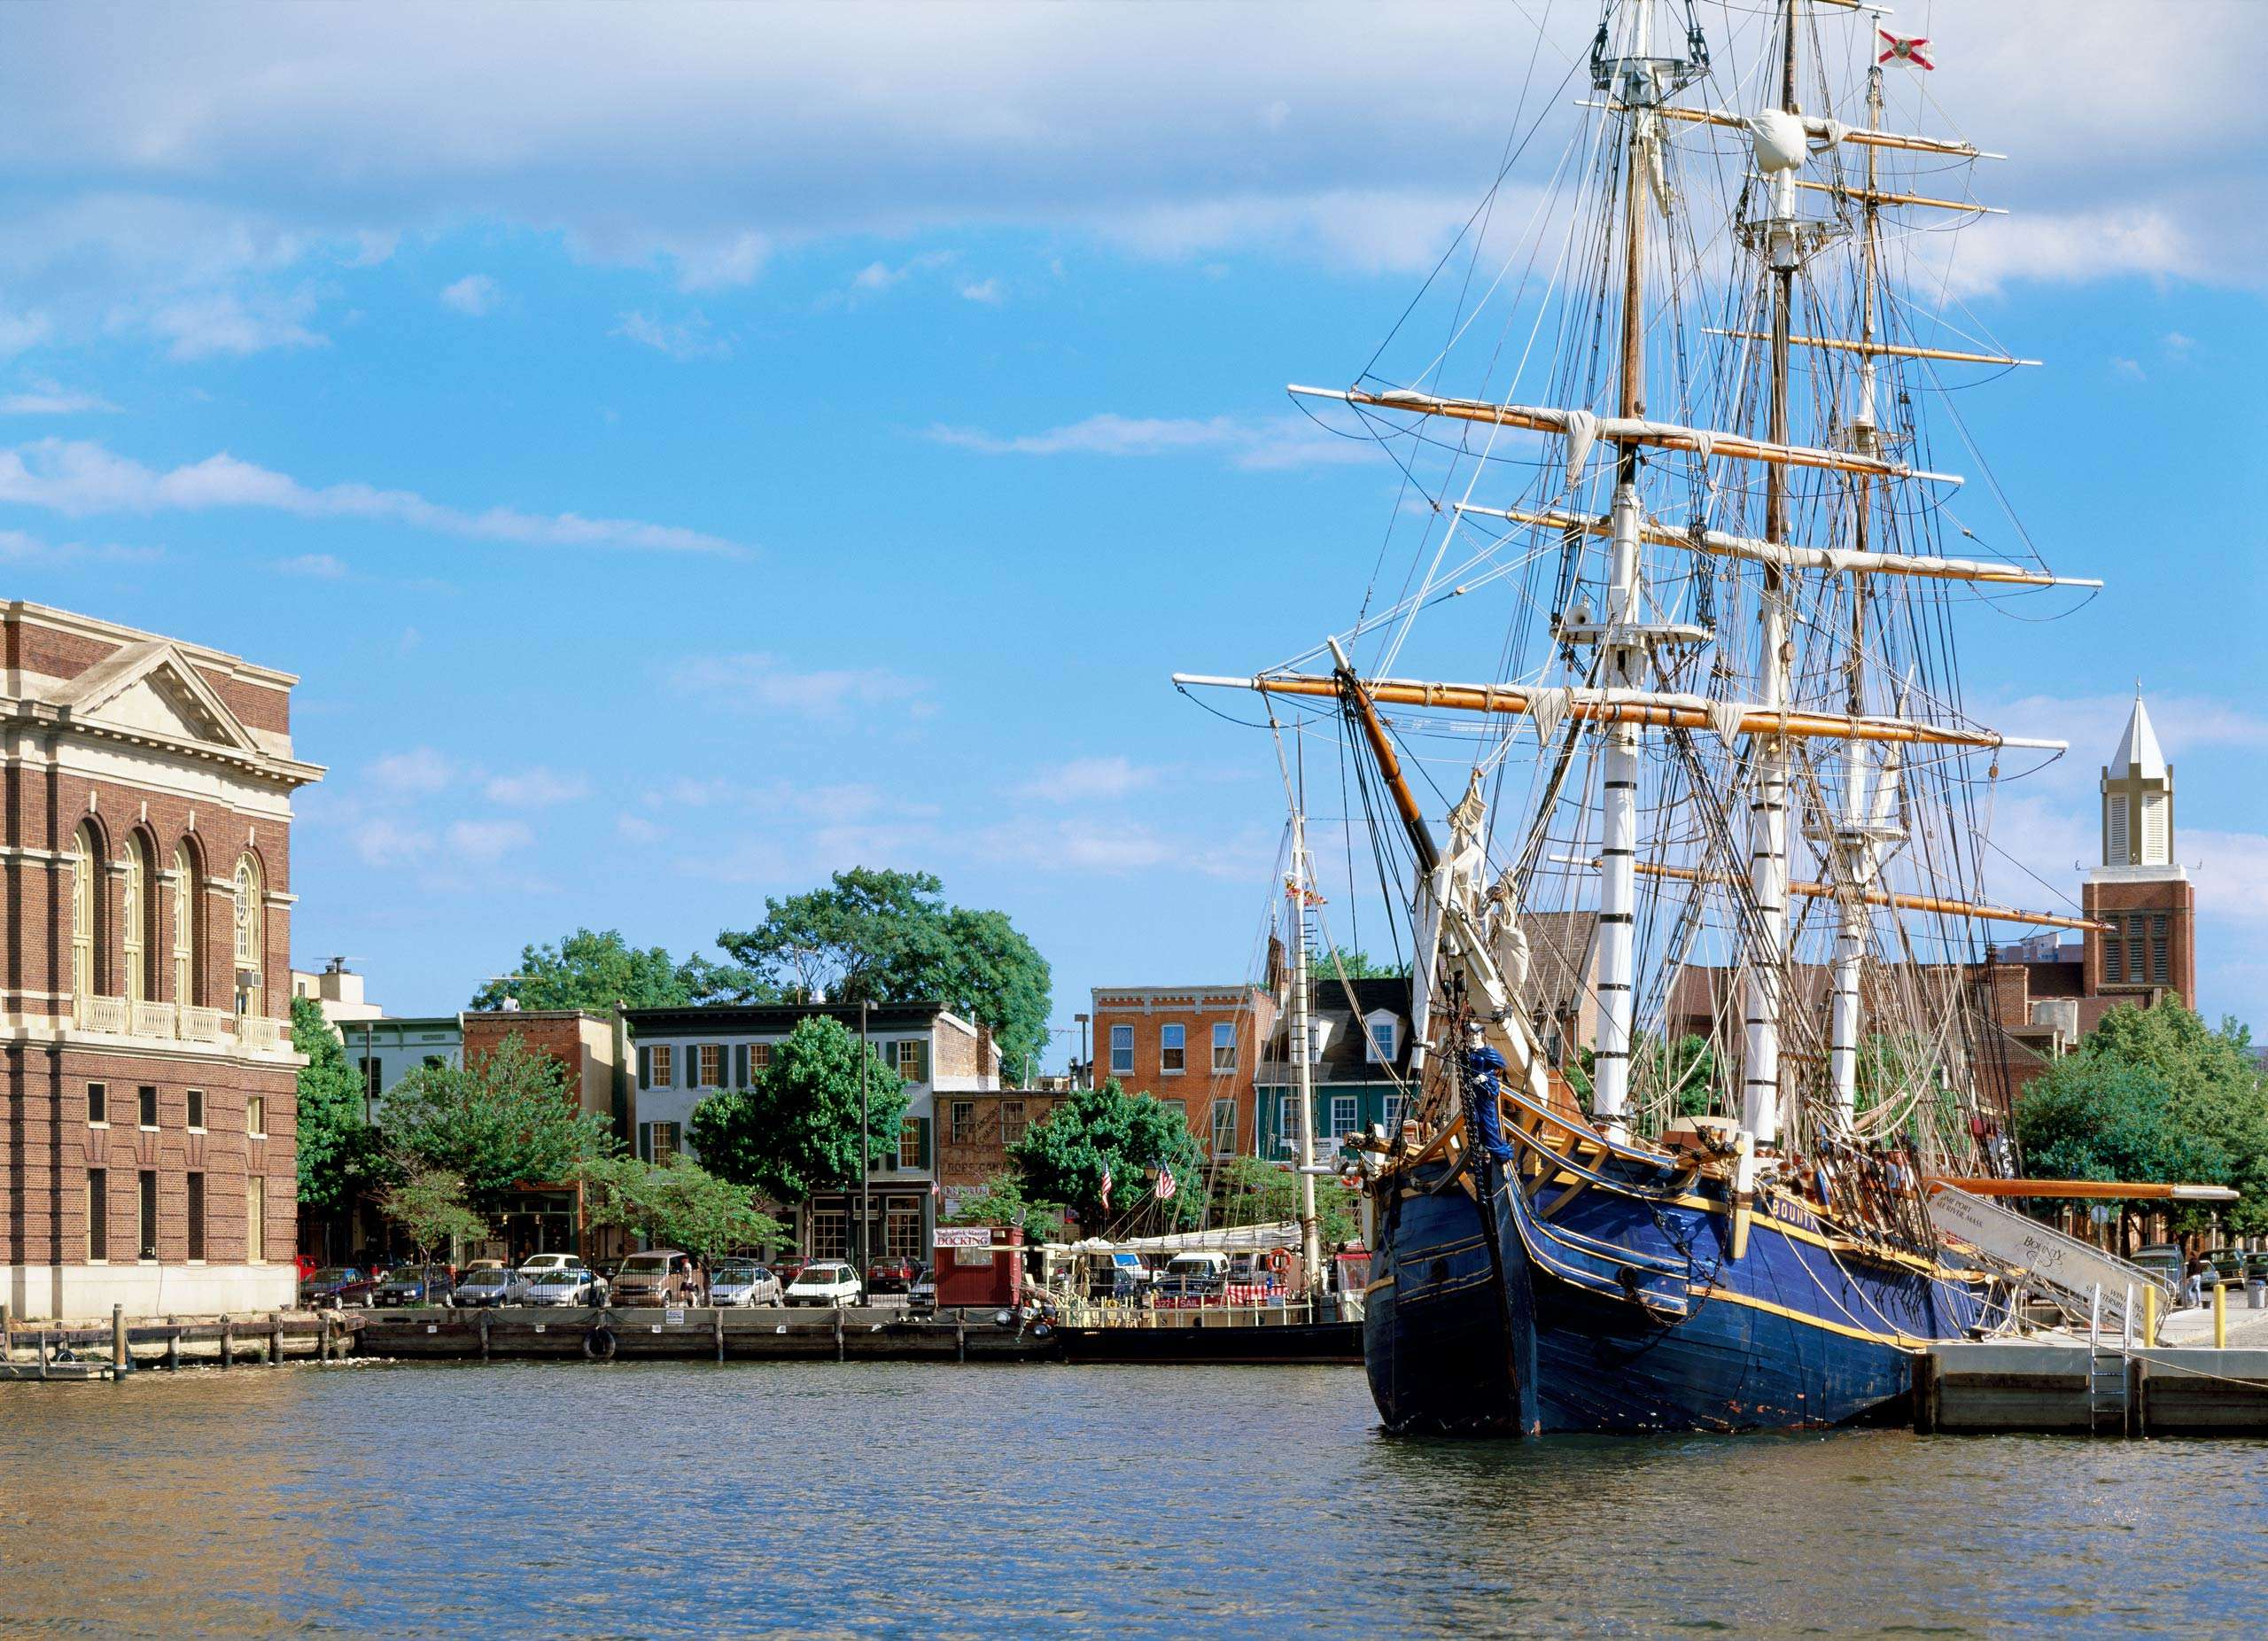 PORTFOLIO - Baltimore - Neighborhoods   #22   Tall Ship Docked in Fells Point Baltimore